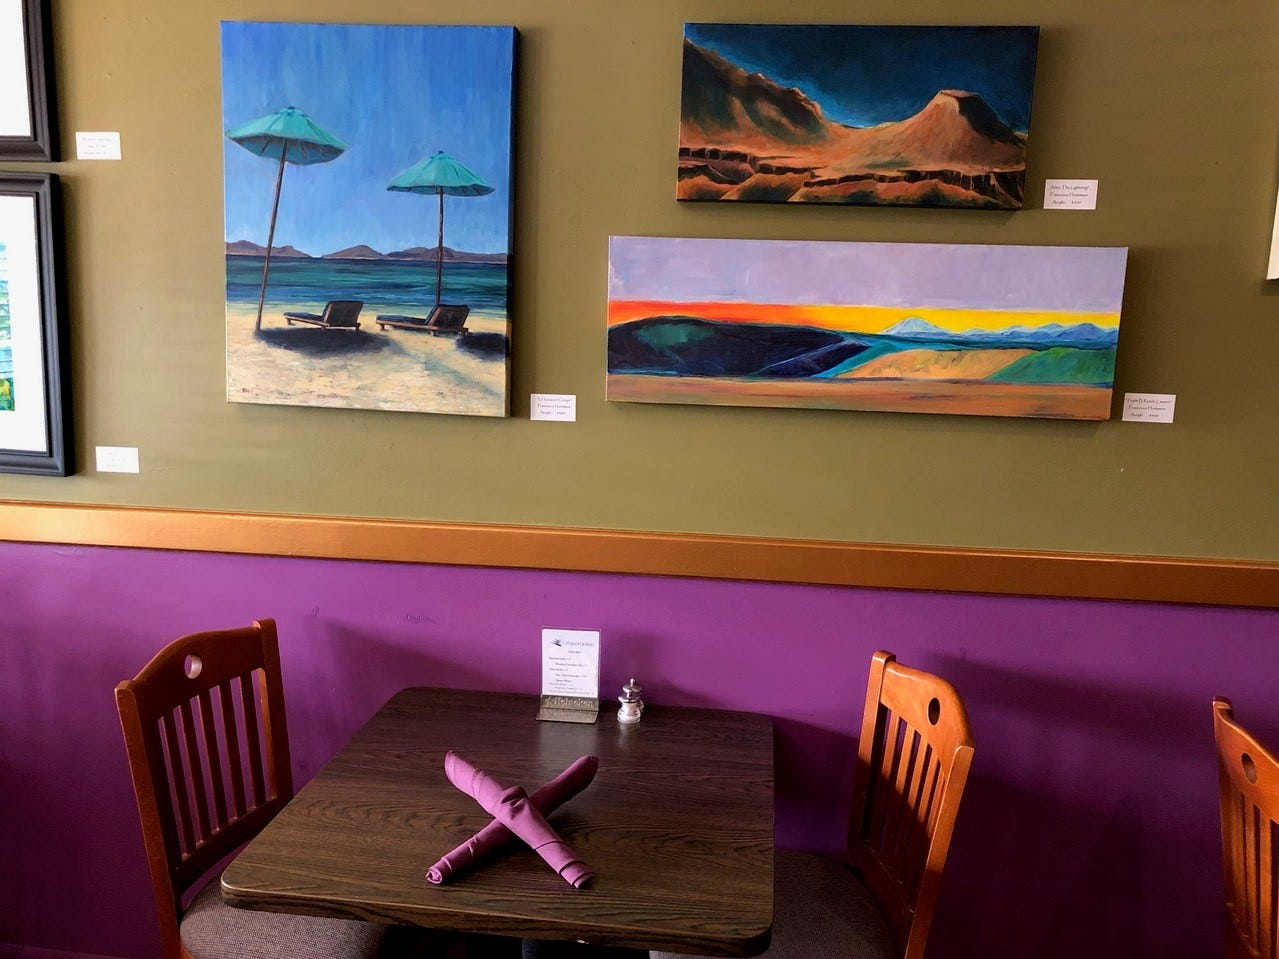 The decor and artwork at Cafe Paradisio in downtown Redding.